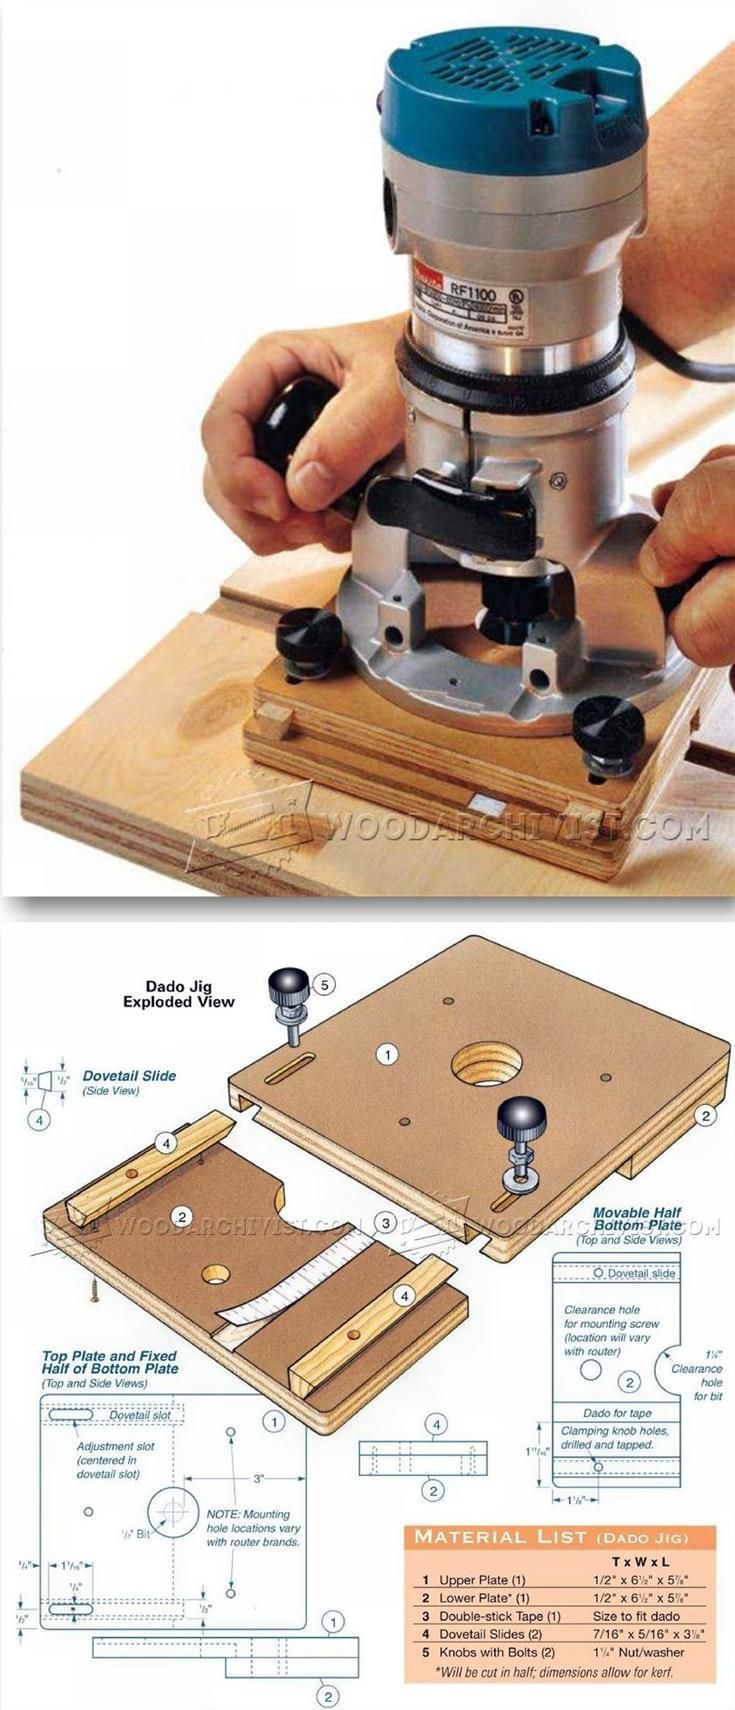 Adjustable Dado Jig - Joinery Tips, Jigs and Techniques | WoodArchivist.com